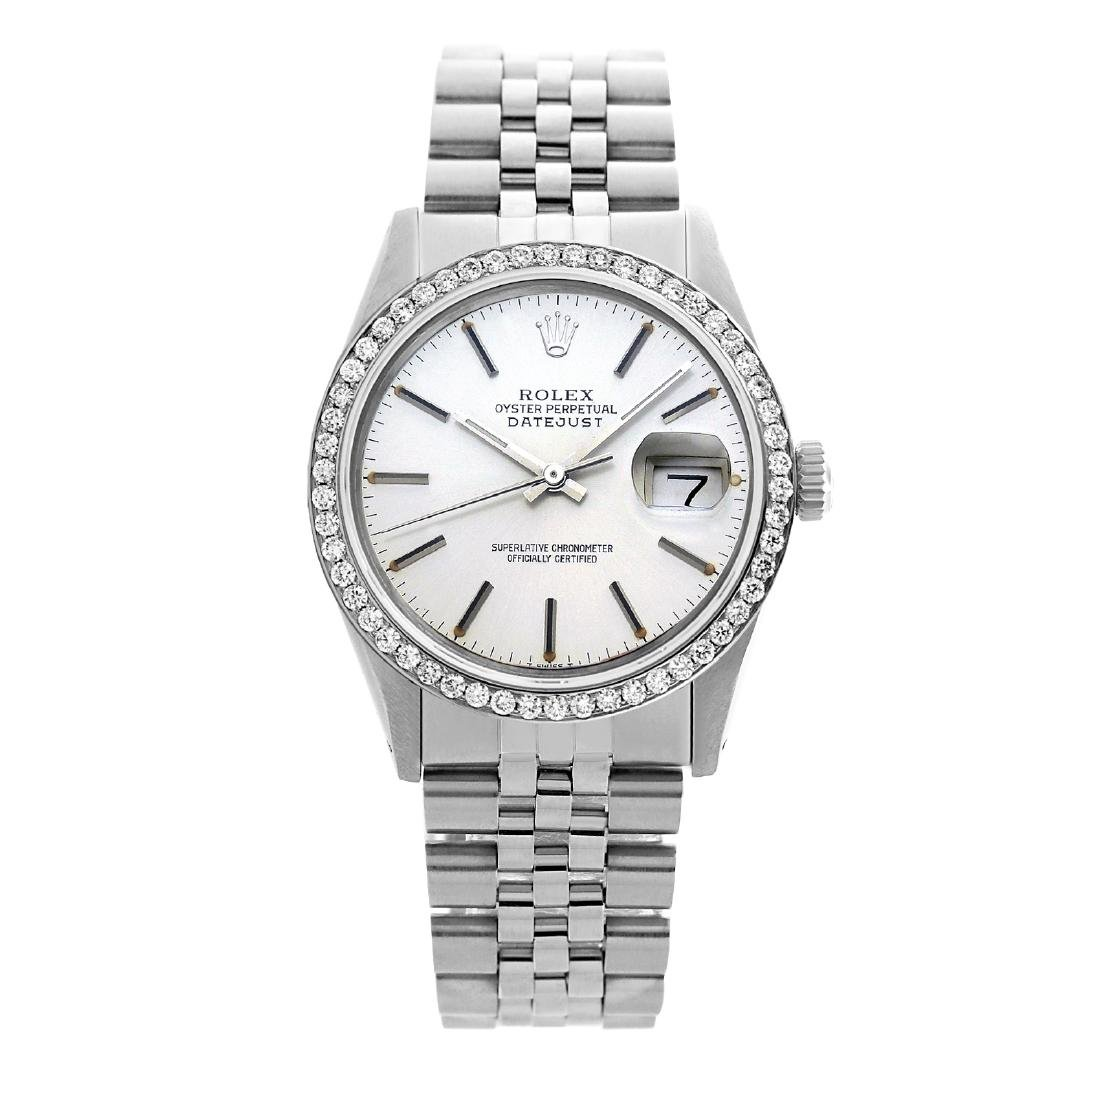 Rolex Men's Stainless Steel, QuickSet, Index Bar Dial - 2